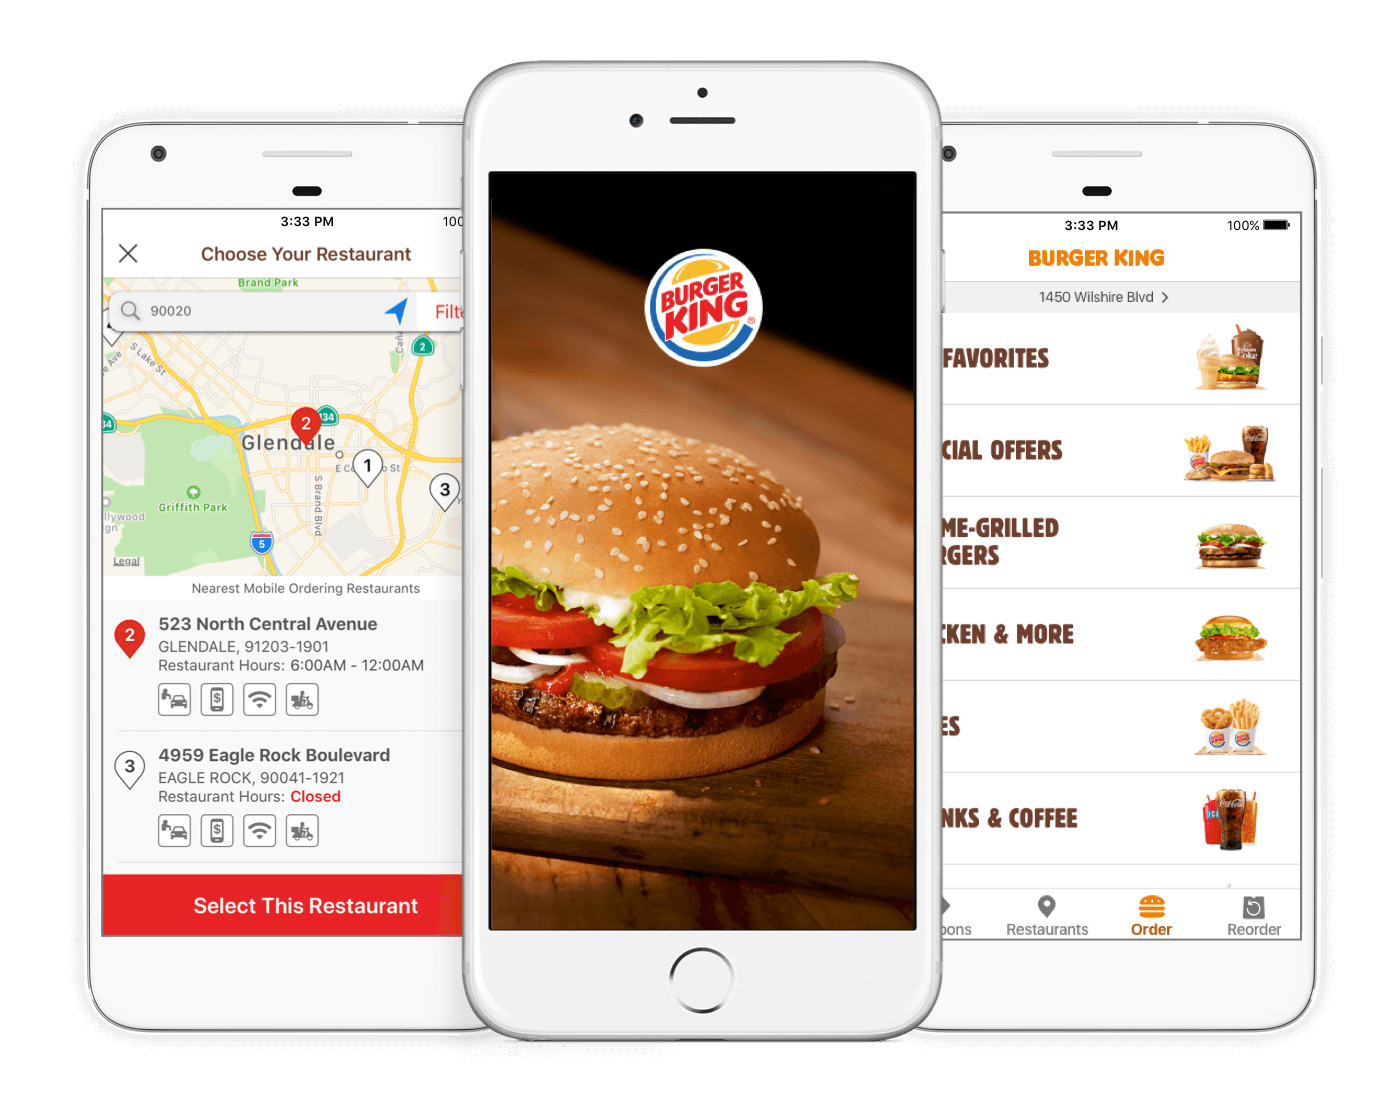 hight resolution of get the official burger king mobile app and earn rewards access coupons pre order from your mobile device and find your nearest bk restaurant anytime